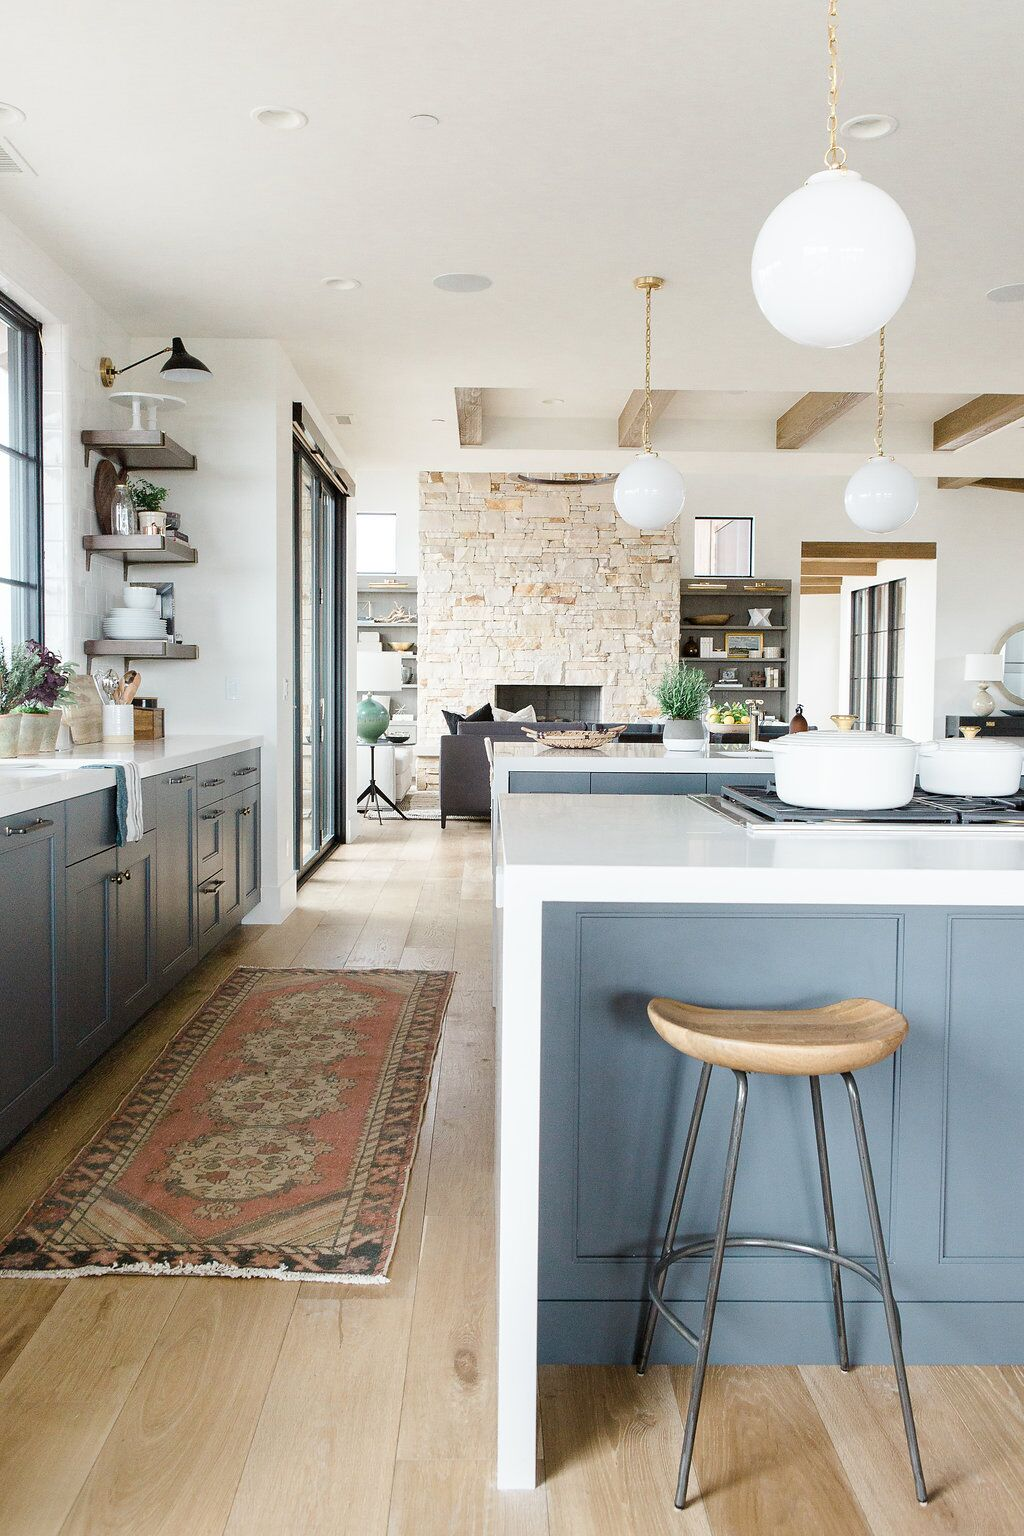 wooden stool and woven rug details in kitchen